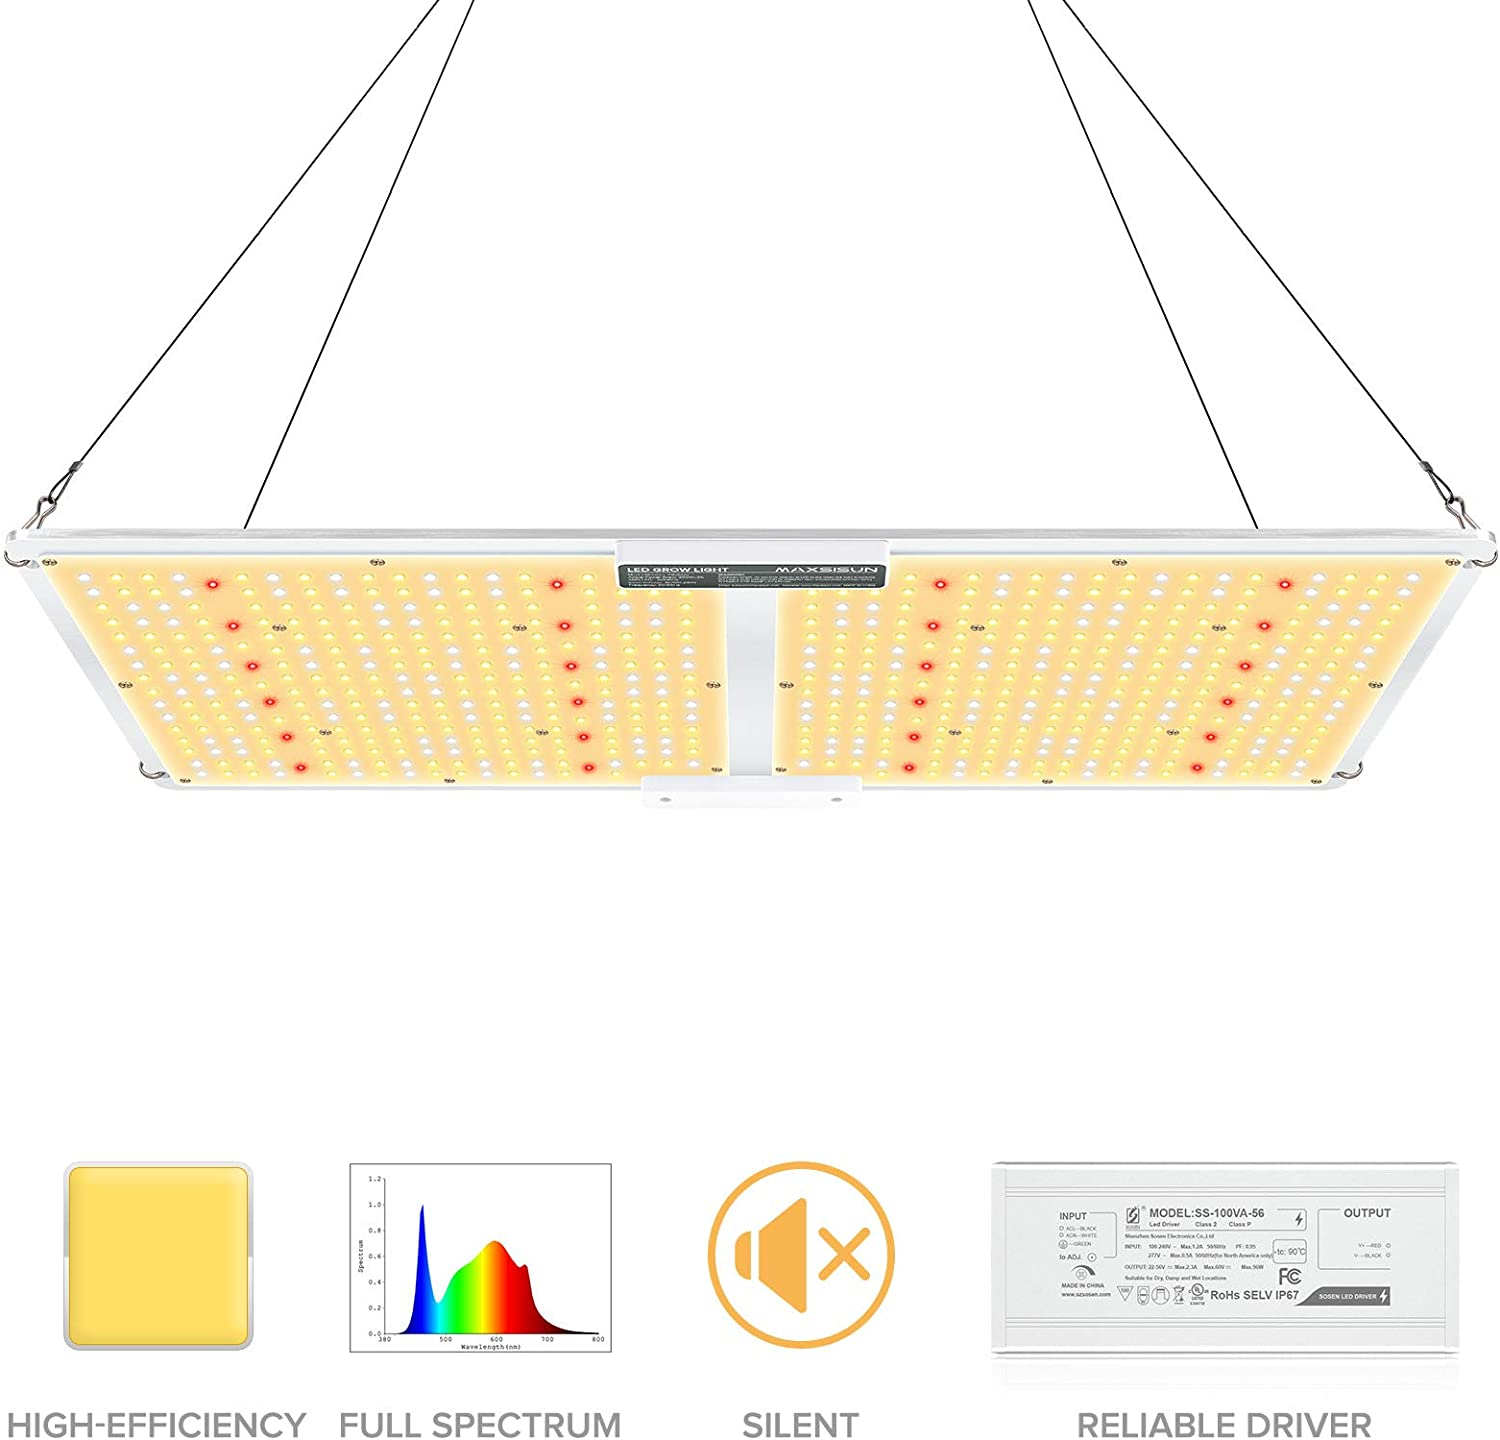 MAXSISUN 2020 Latest QB Style PB 2000 LED Grow Light, High PPFD Rating Sunlike Full Spectrum LED Grow Lights for Indoor Plants Veg and Bloom, Plant Growing Lamps to Cover a 3x3.5 ft Flowering Space